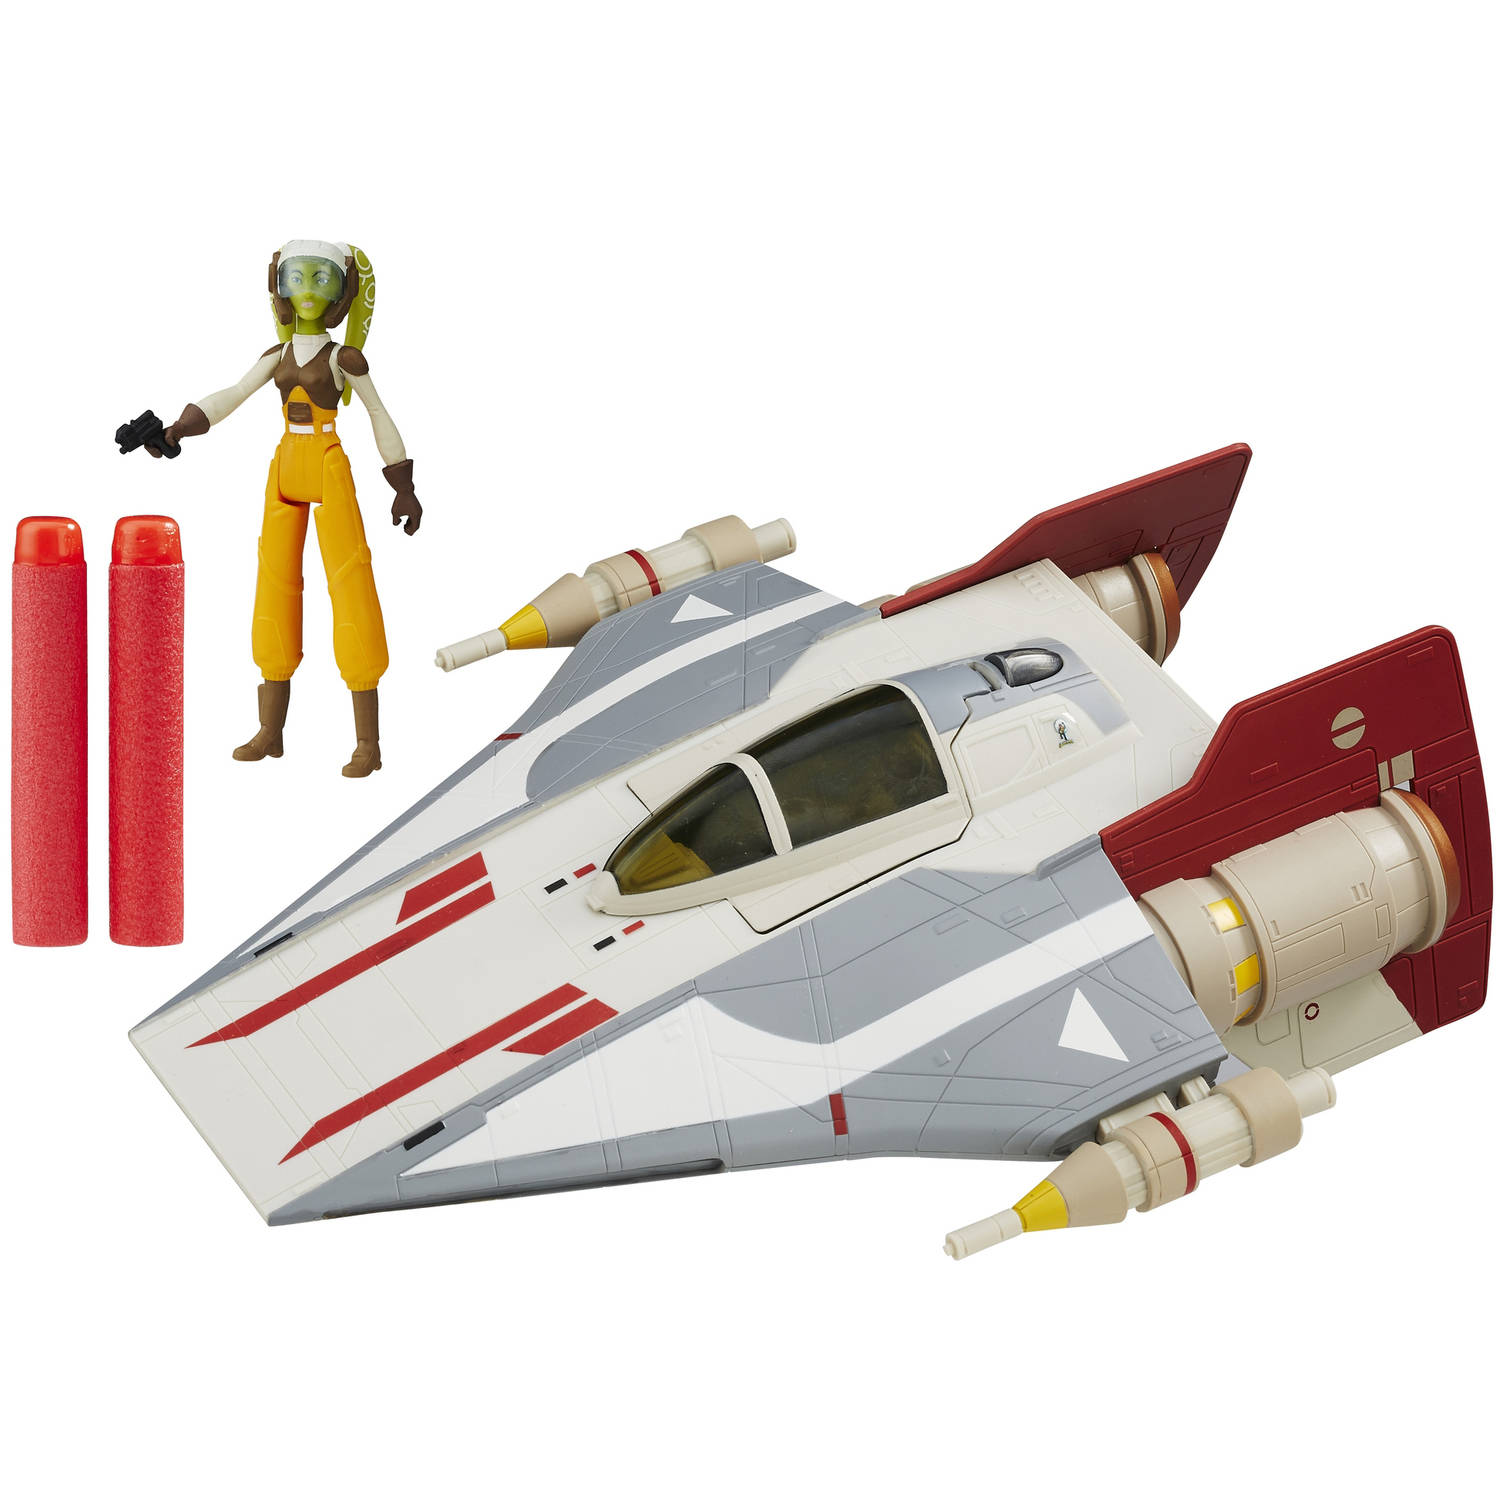 Star Wars Rebels Hera Syndulla's A-Wing